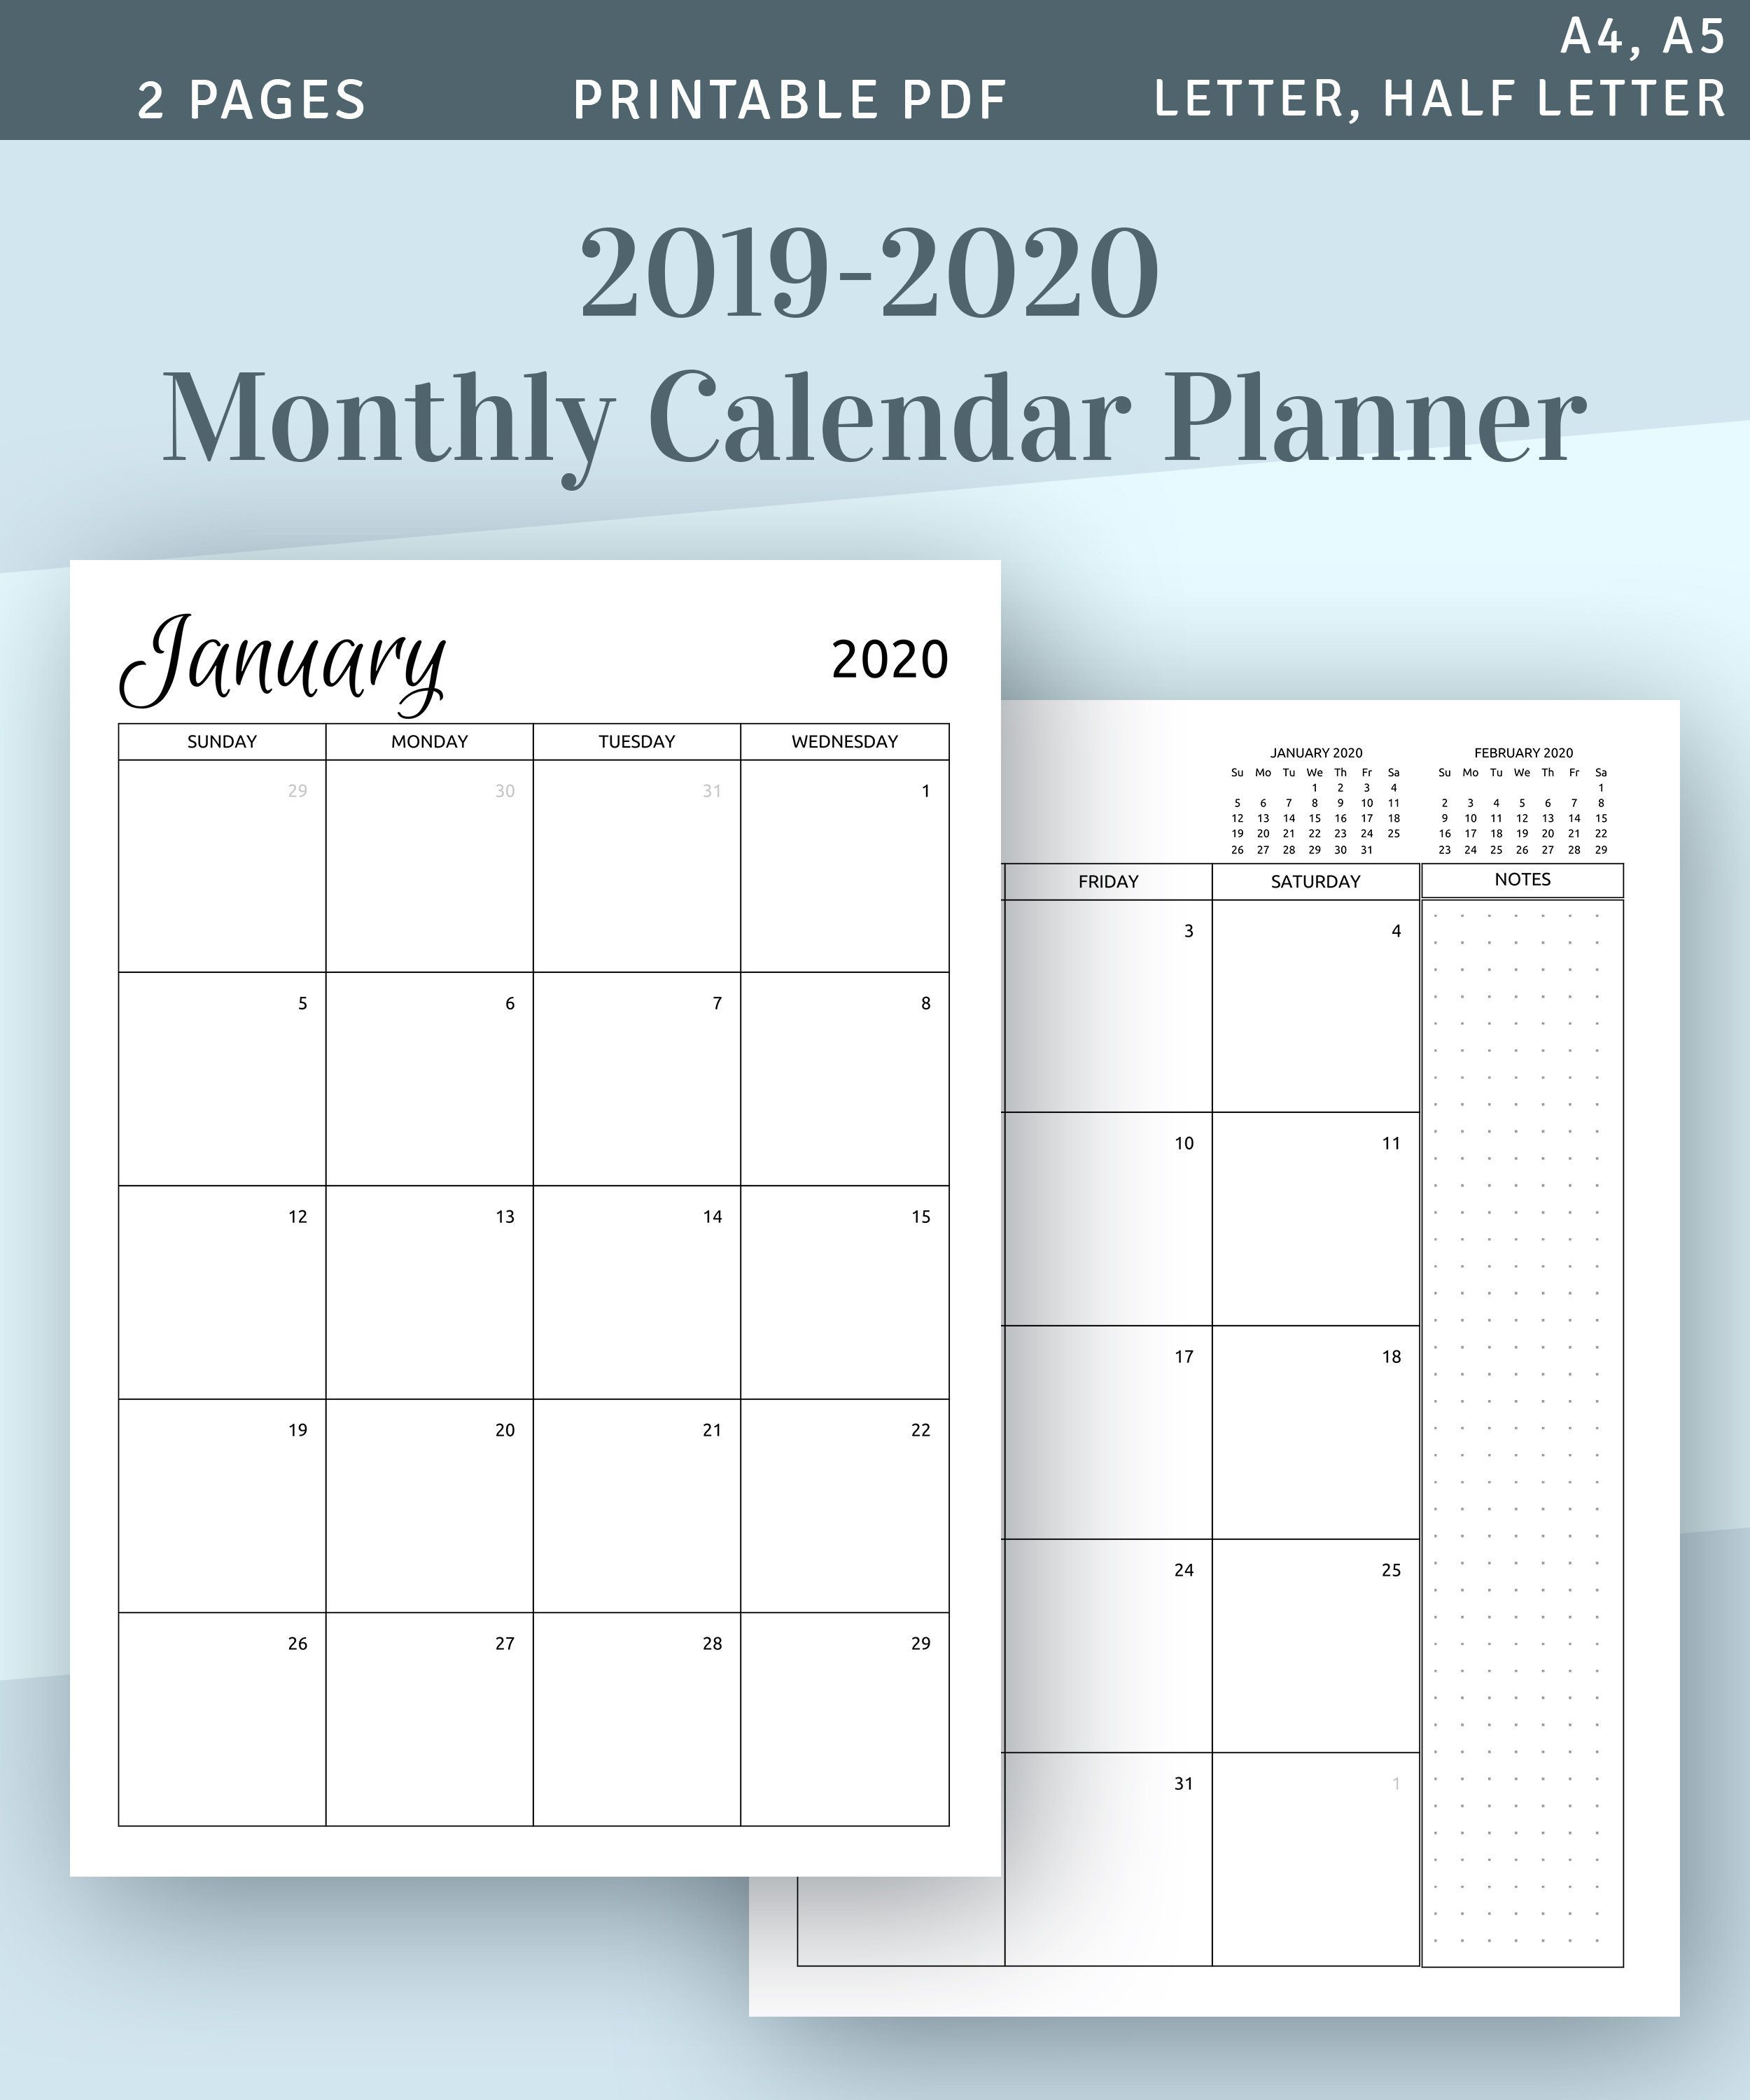 2019 2020 Monthly Calendar Printable Template Download 2019 Etsy Monthly Calendar Printable Calendar Printables Calendar Monthly Planner